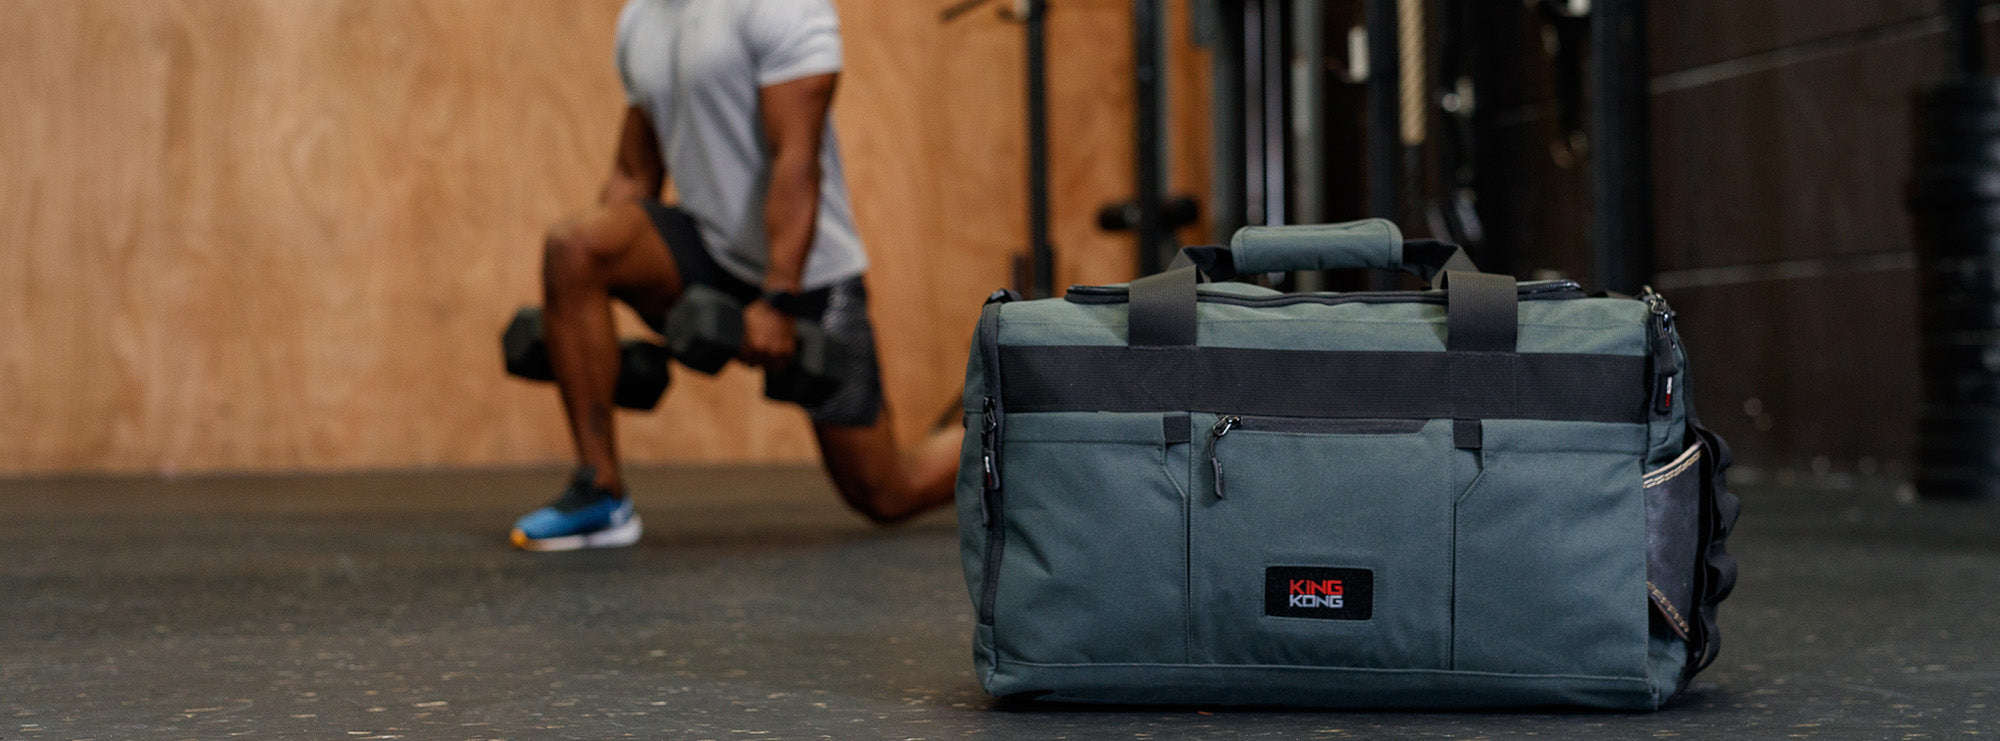 Gym duffel with weightlifting belt attachment